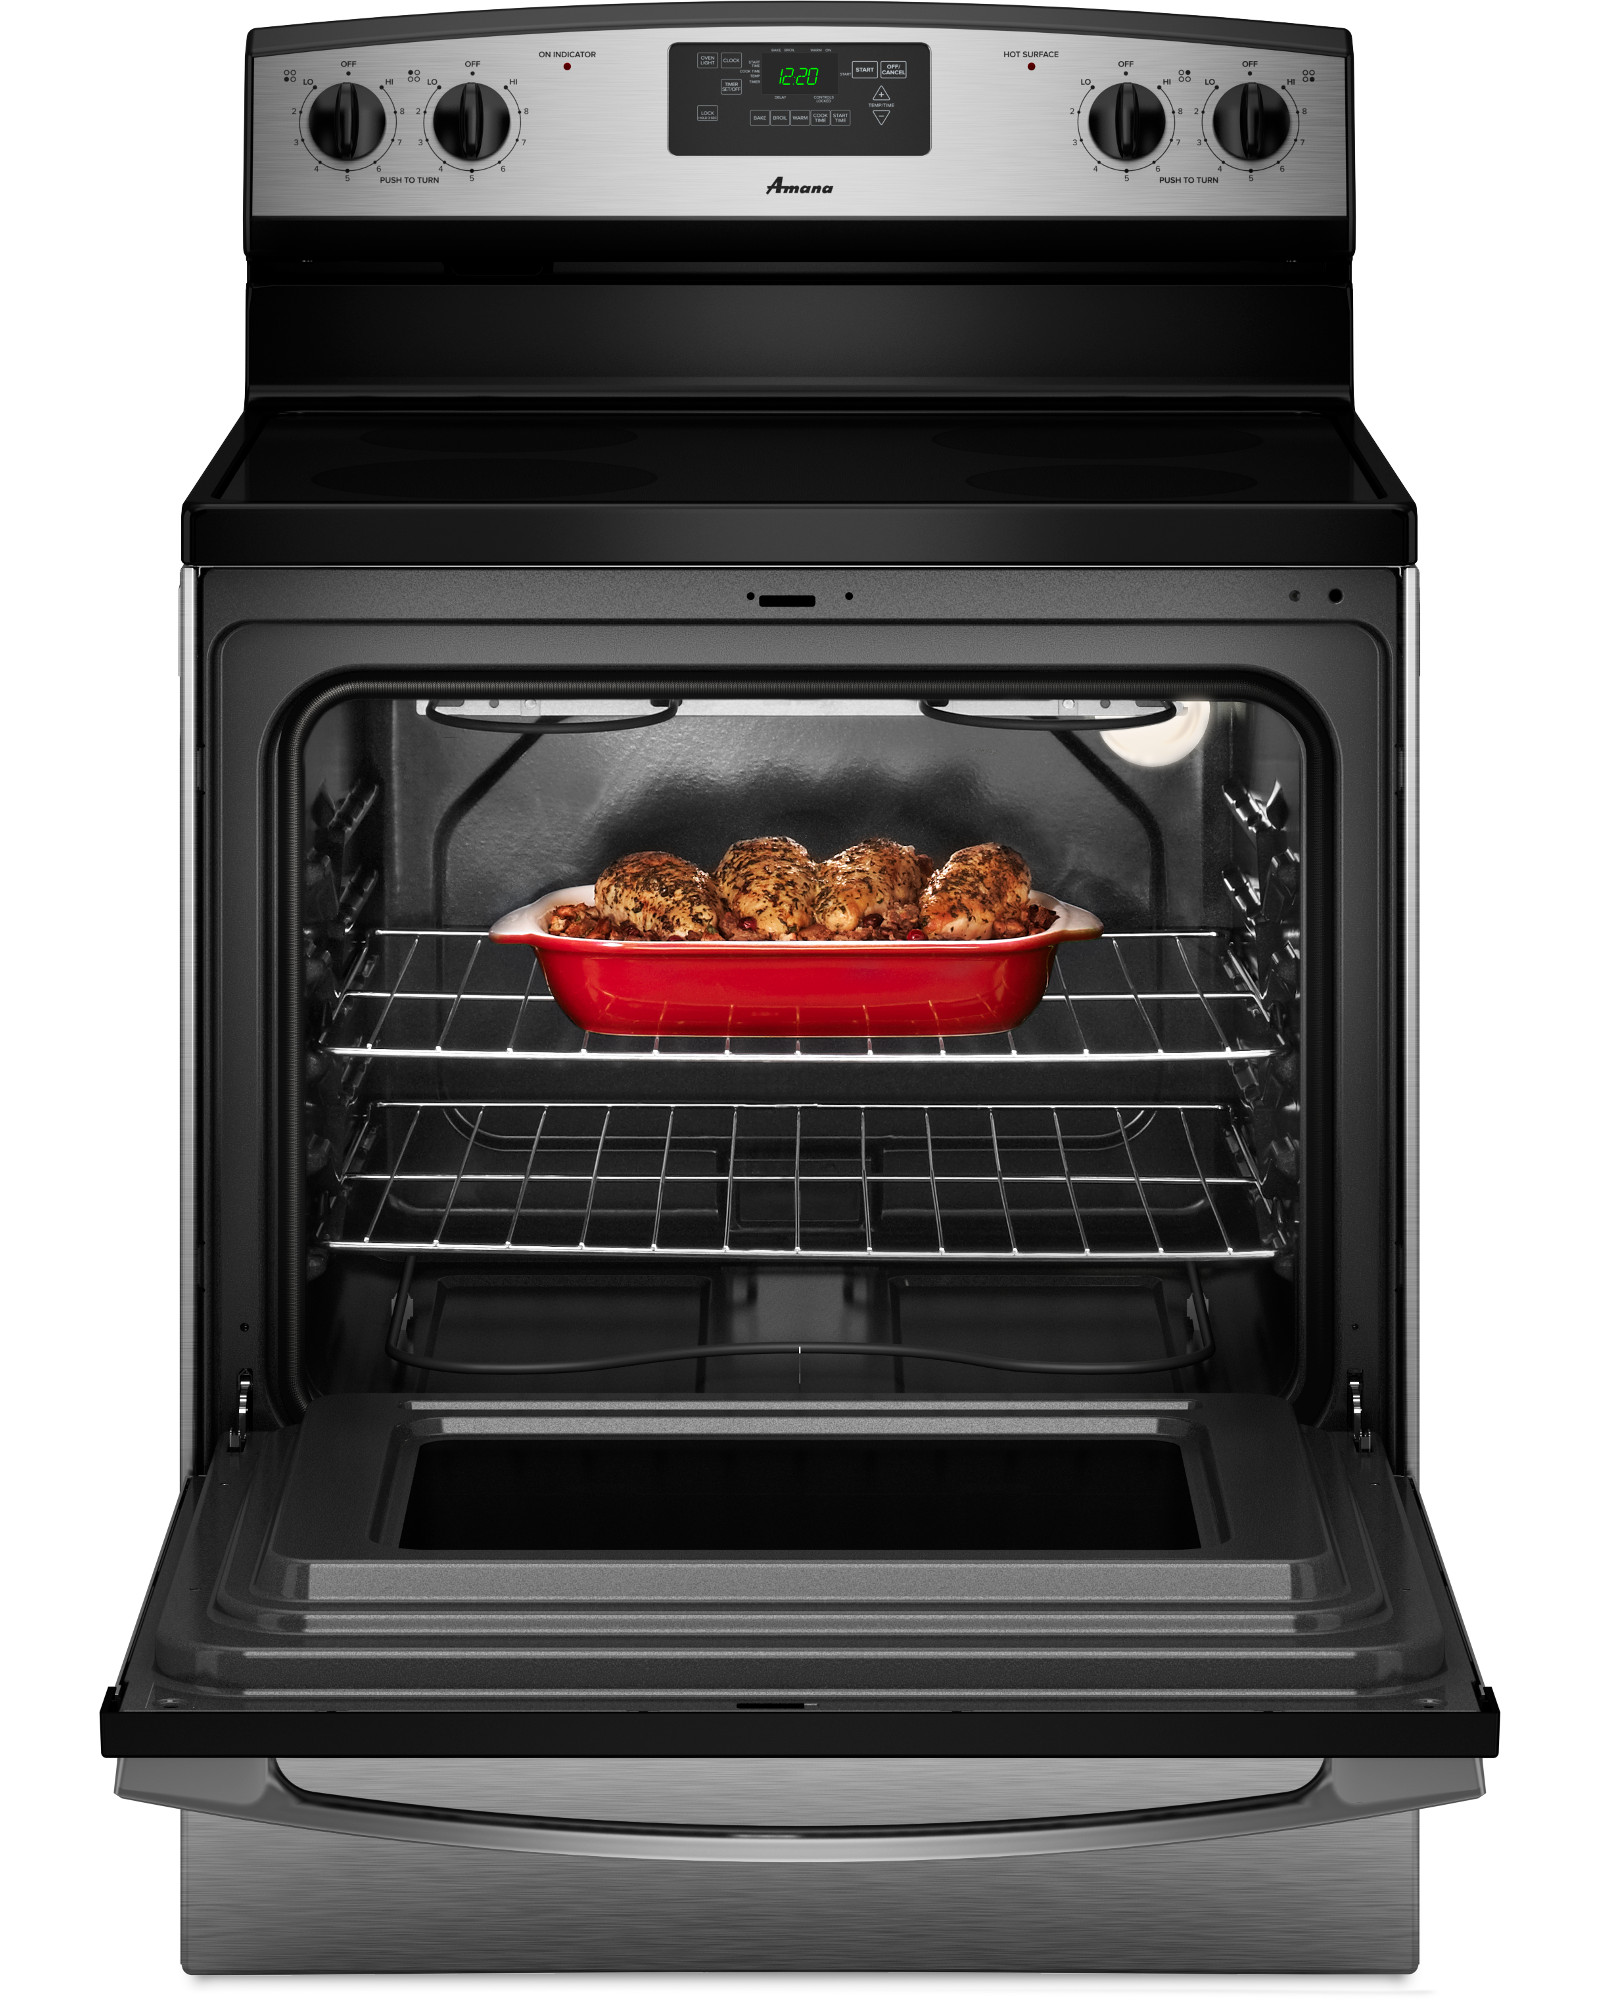 National Brand 4.8 cu. ft. Freestanding Electric Range - Stainless Steel